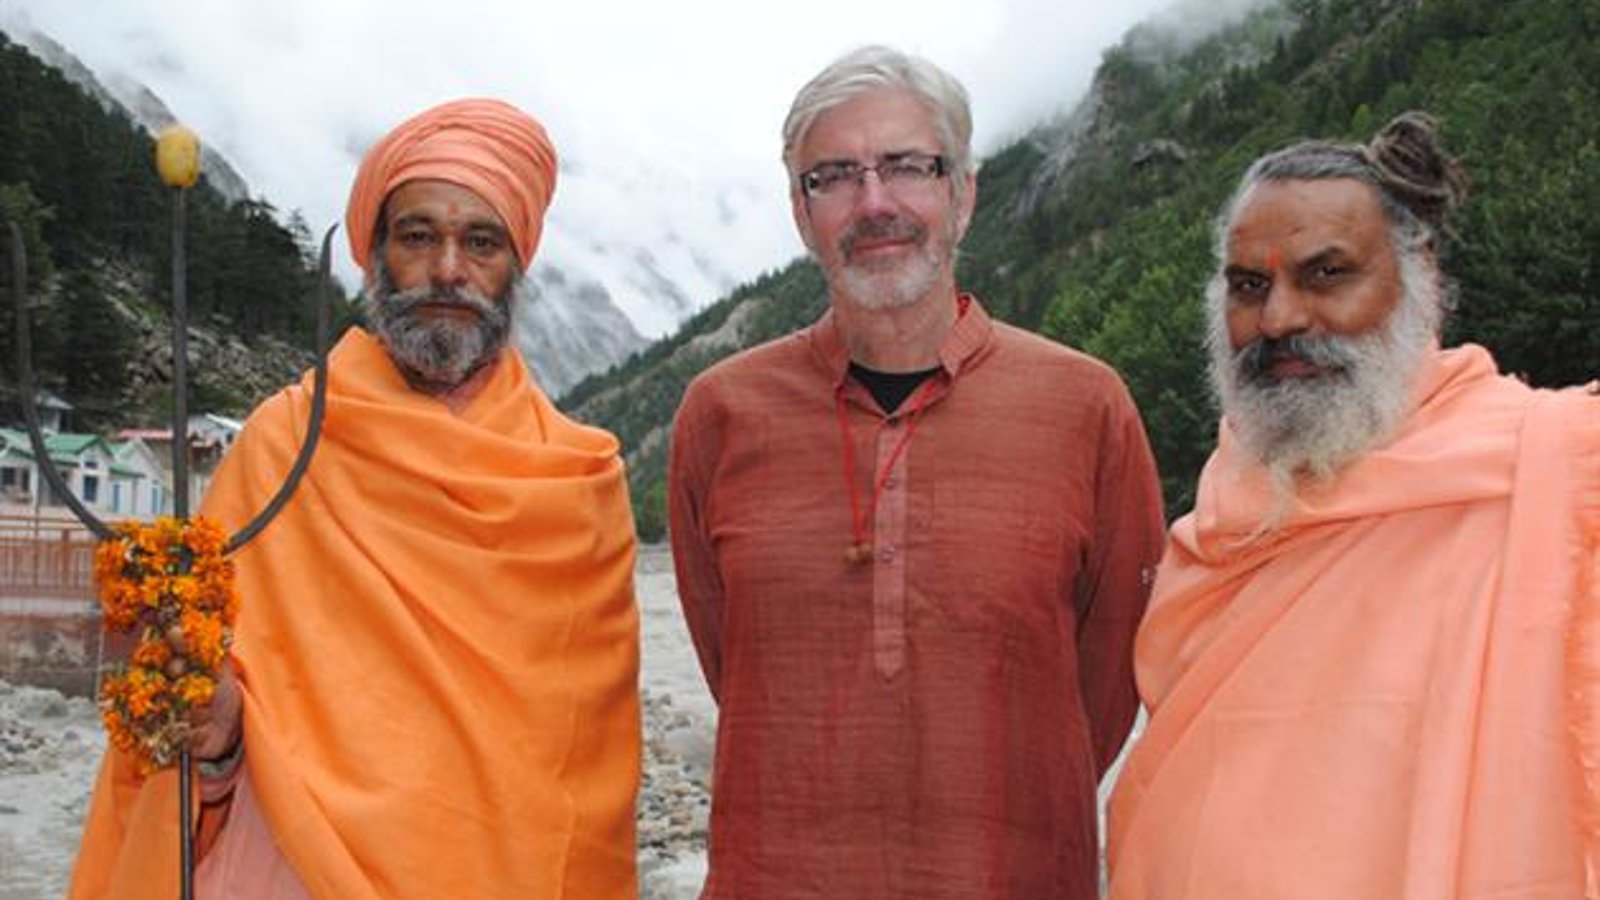 Shaun Micallef's Stairway To Heaven - Gods, Gurus and The Ganges